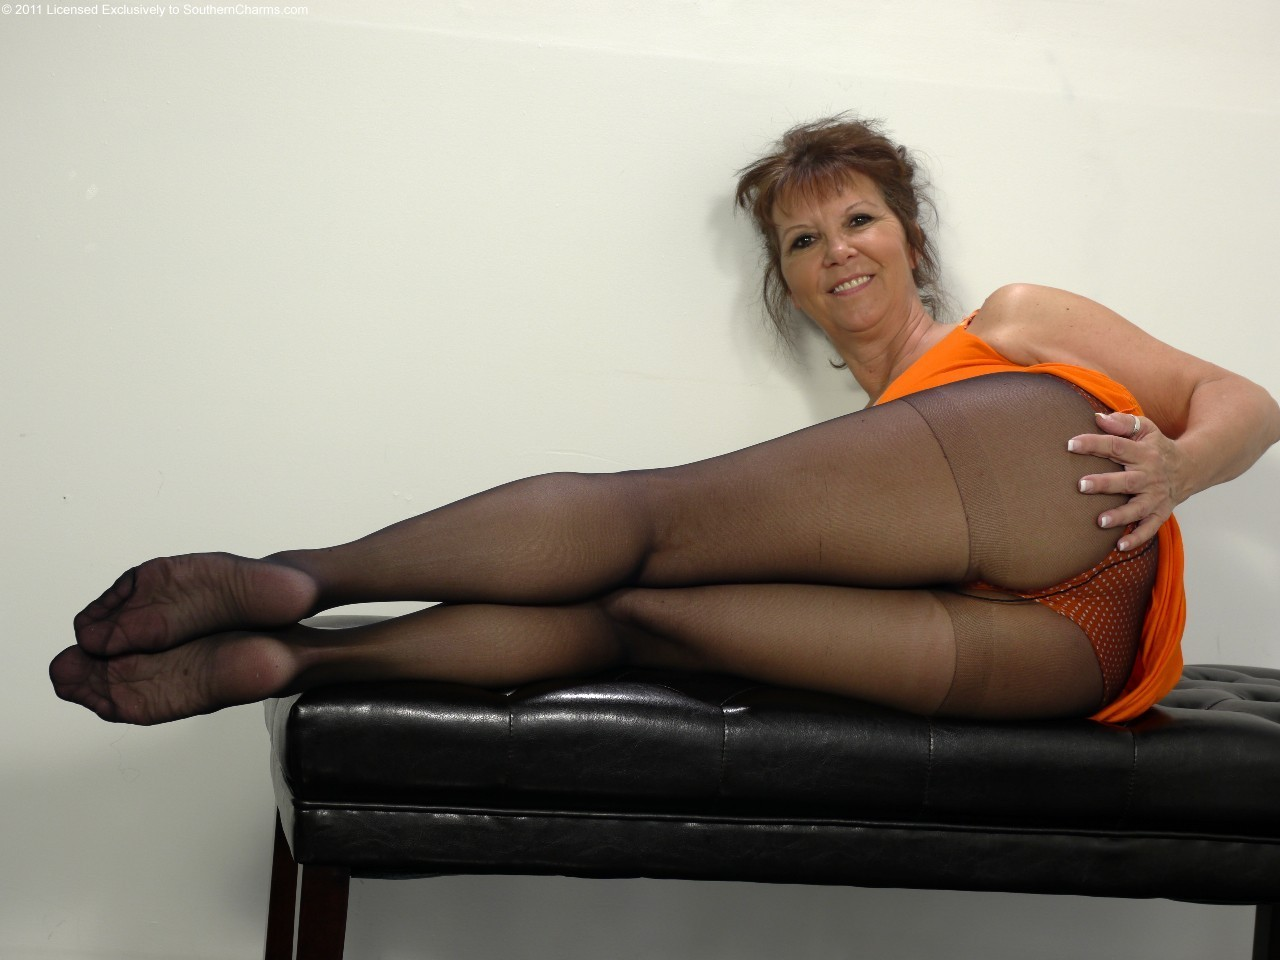 from Daniel hot bilderna pantyhose porn